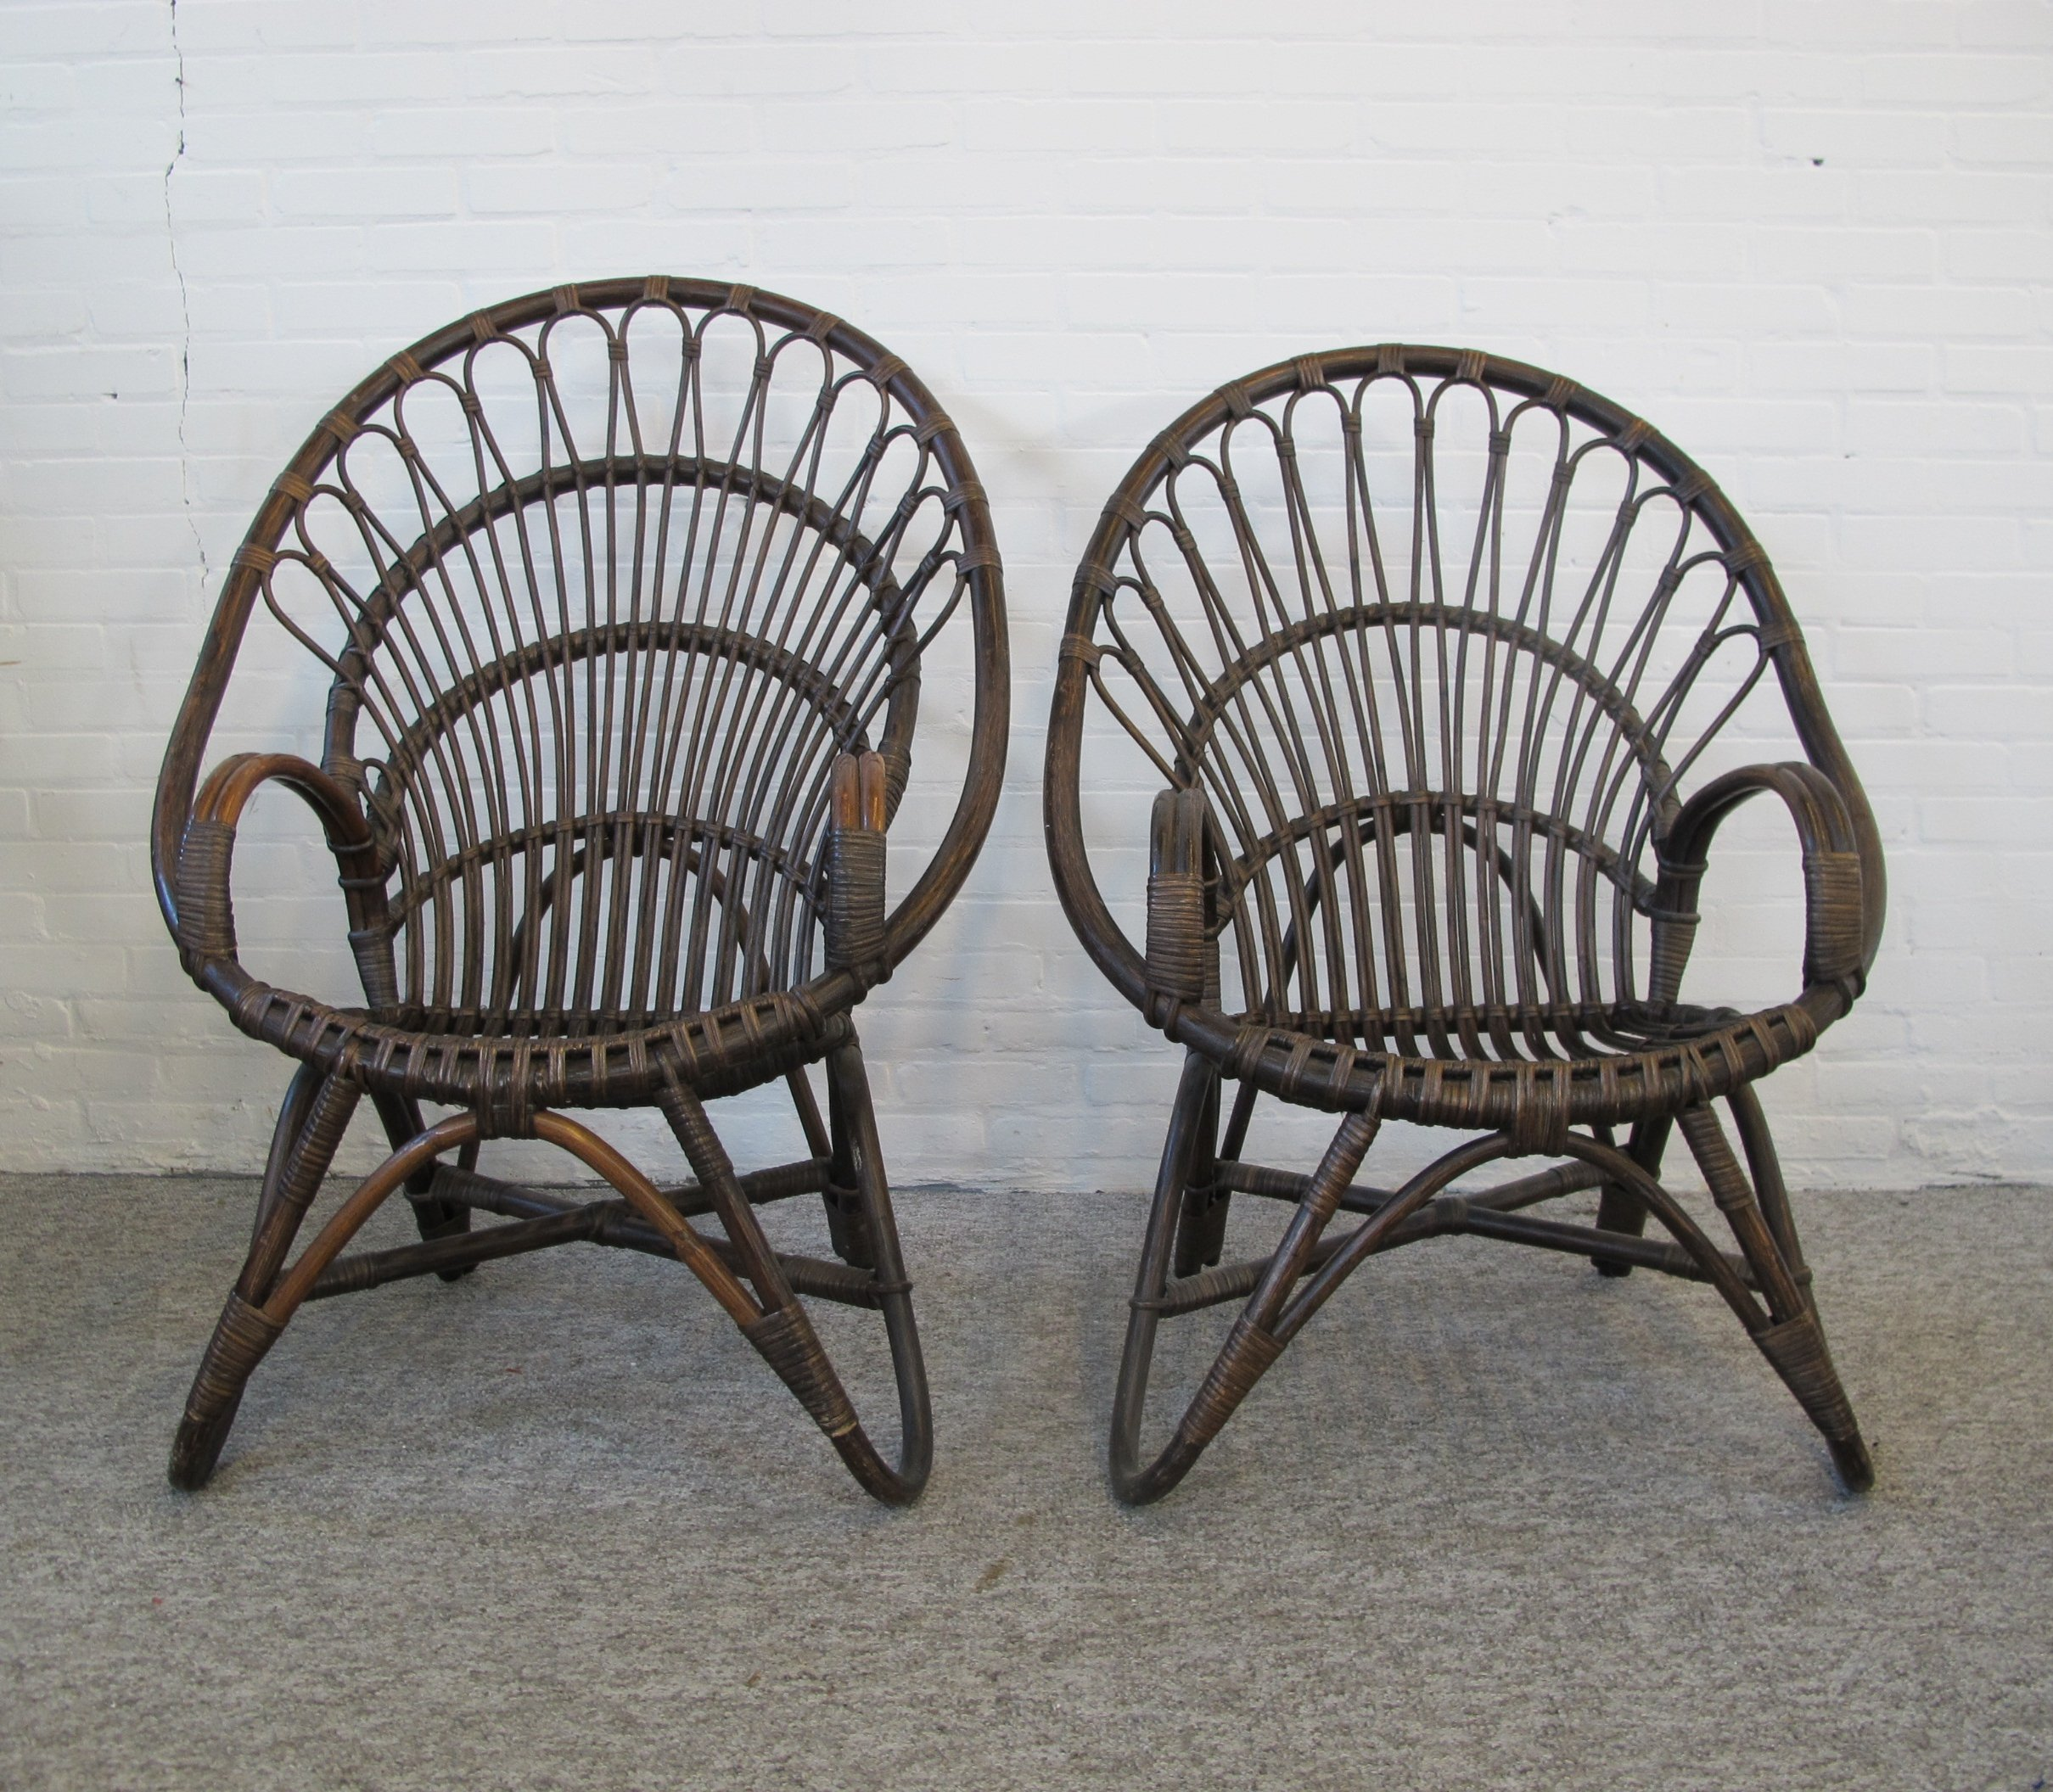 Bamboo Chairs Pair Of Mid Century Rattan Bamboo Chairs 1970s